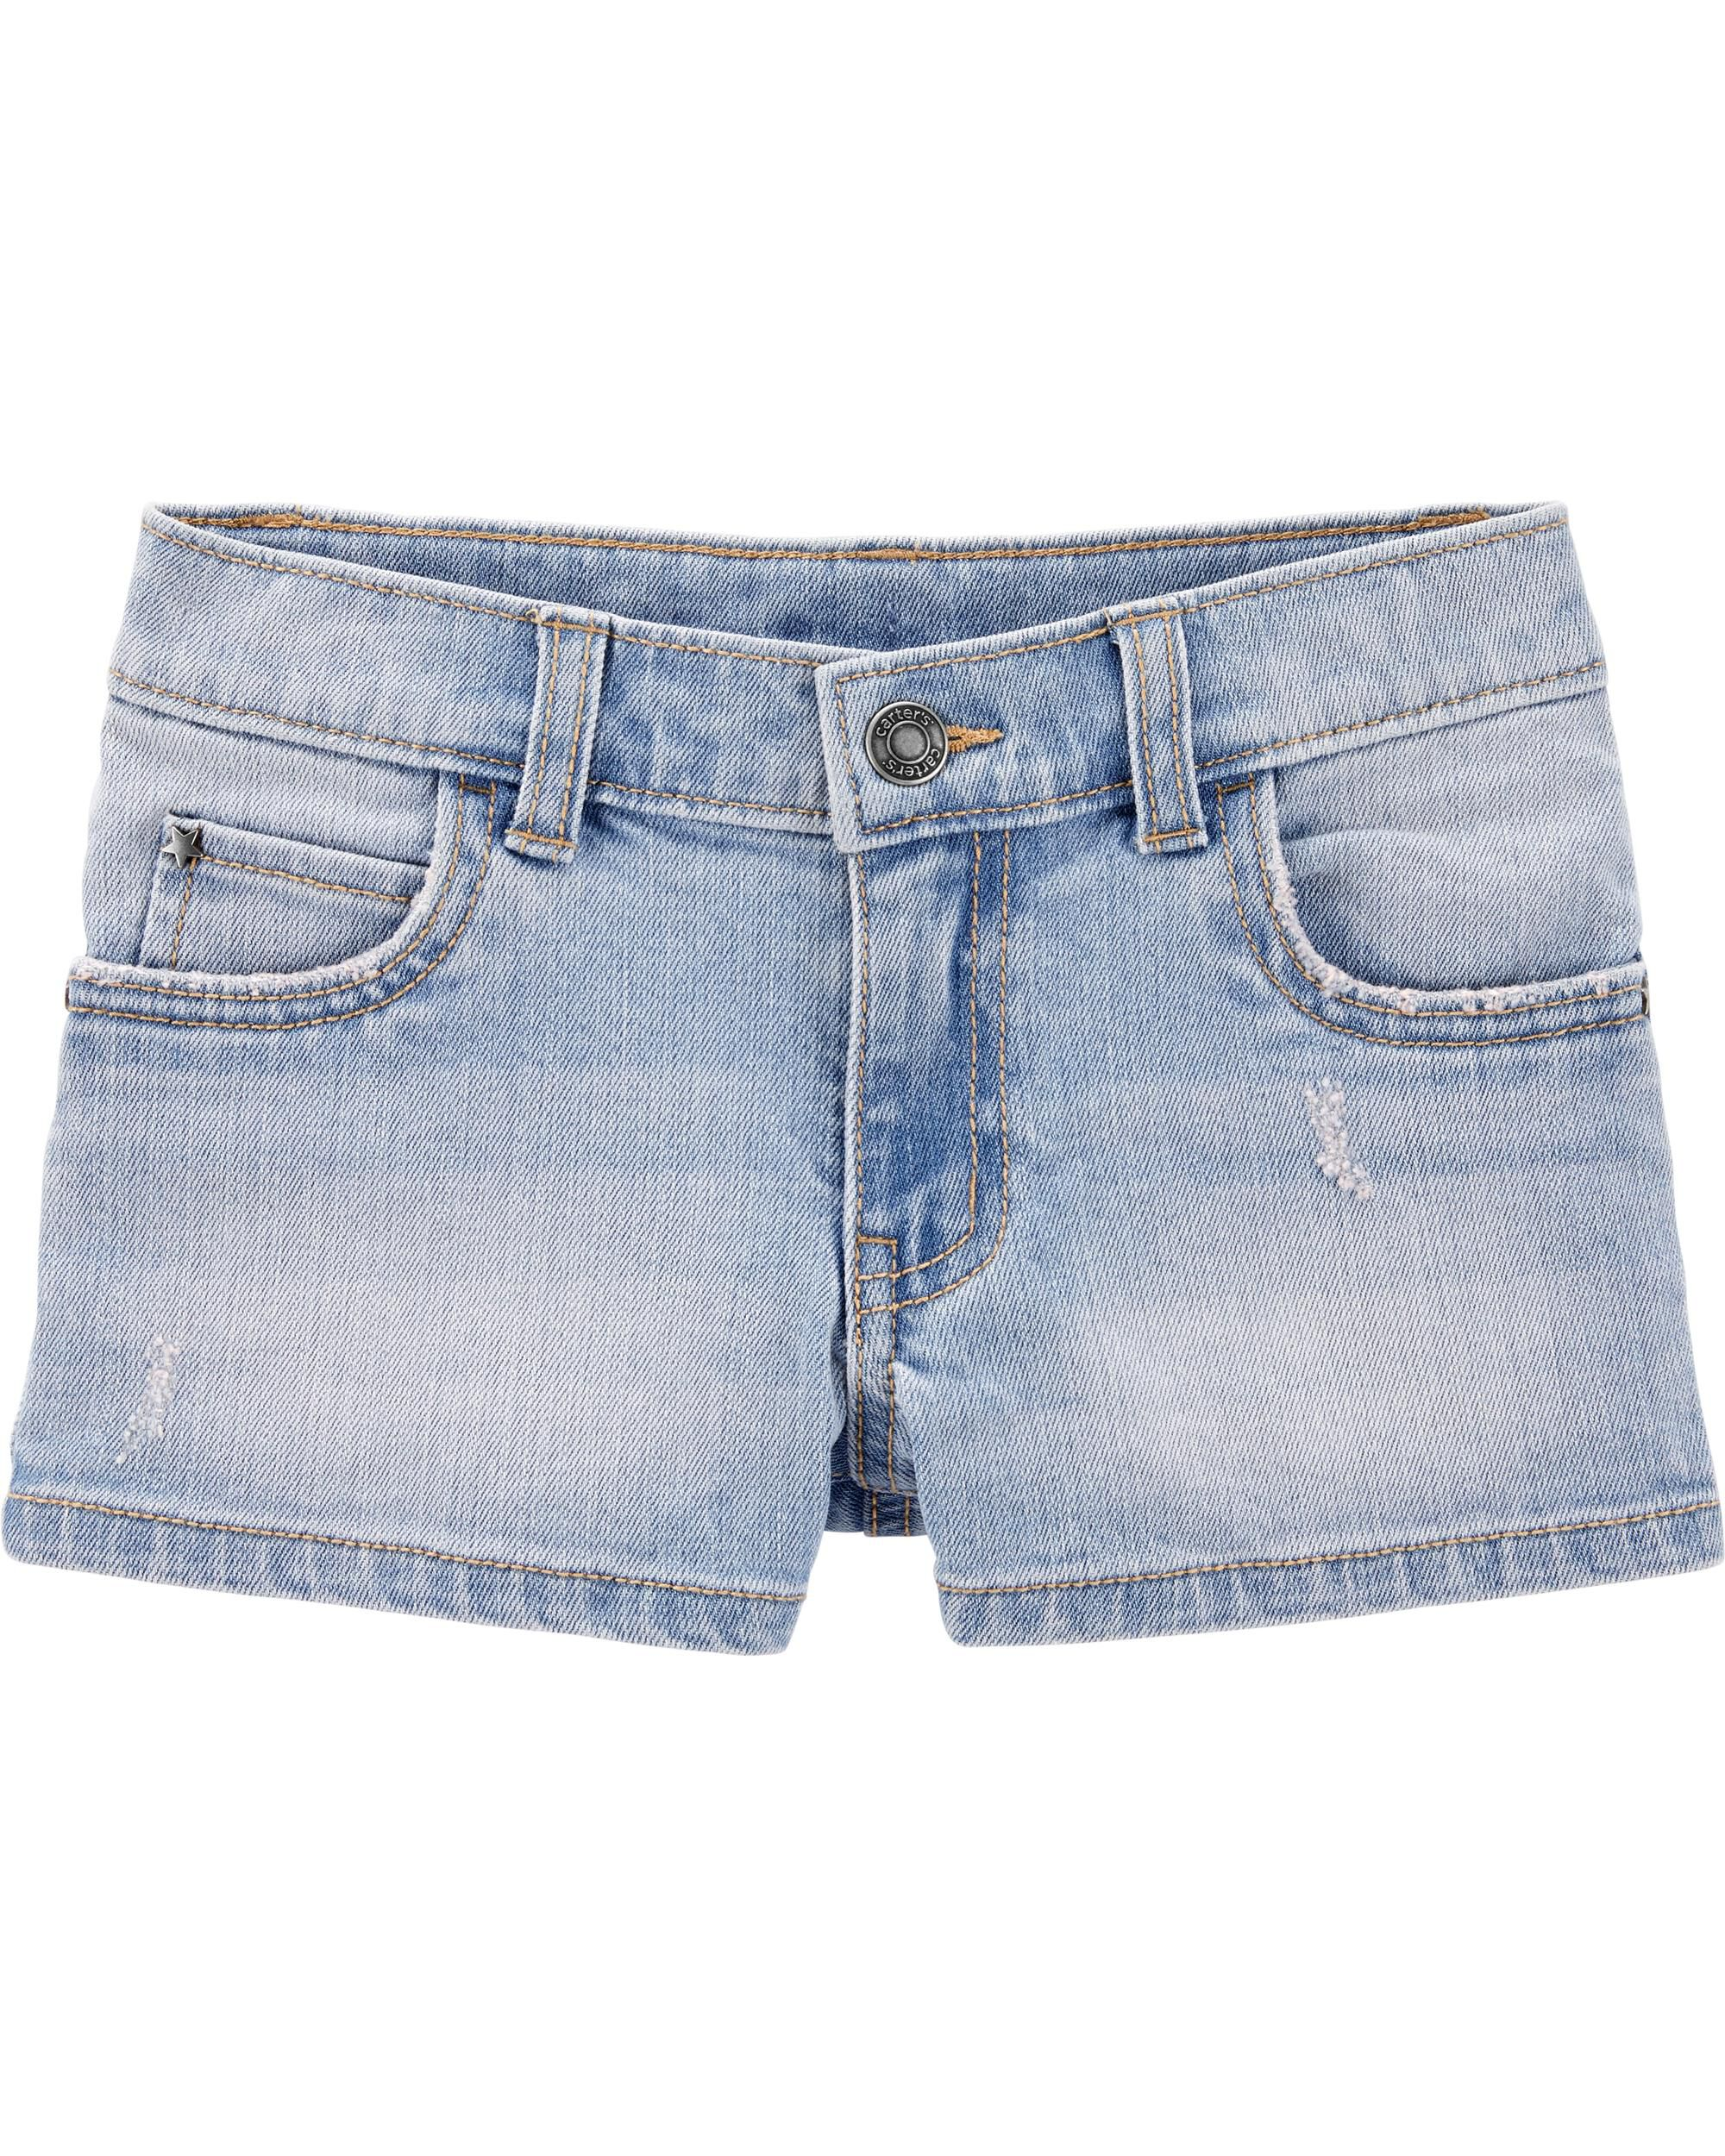 *Clearance*  Denim Shorts